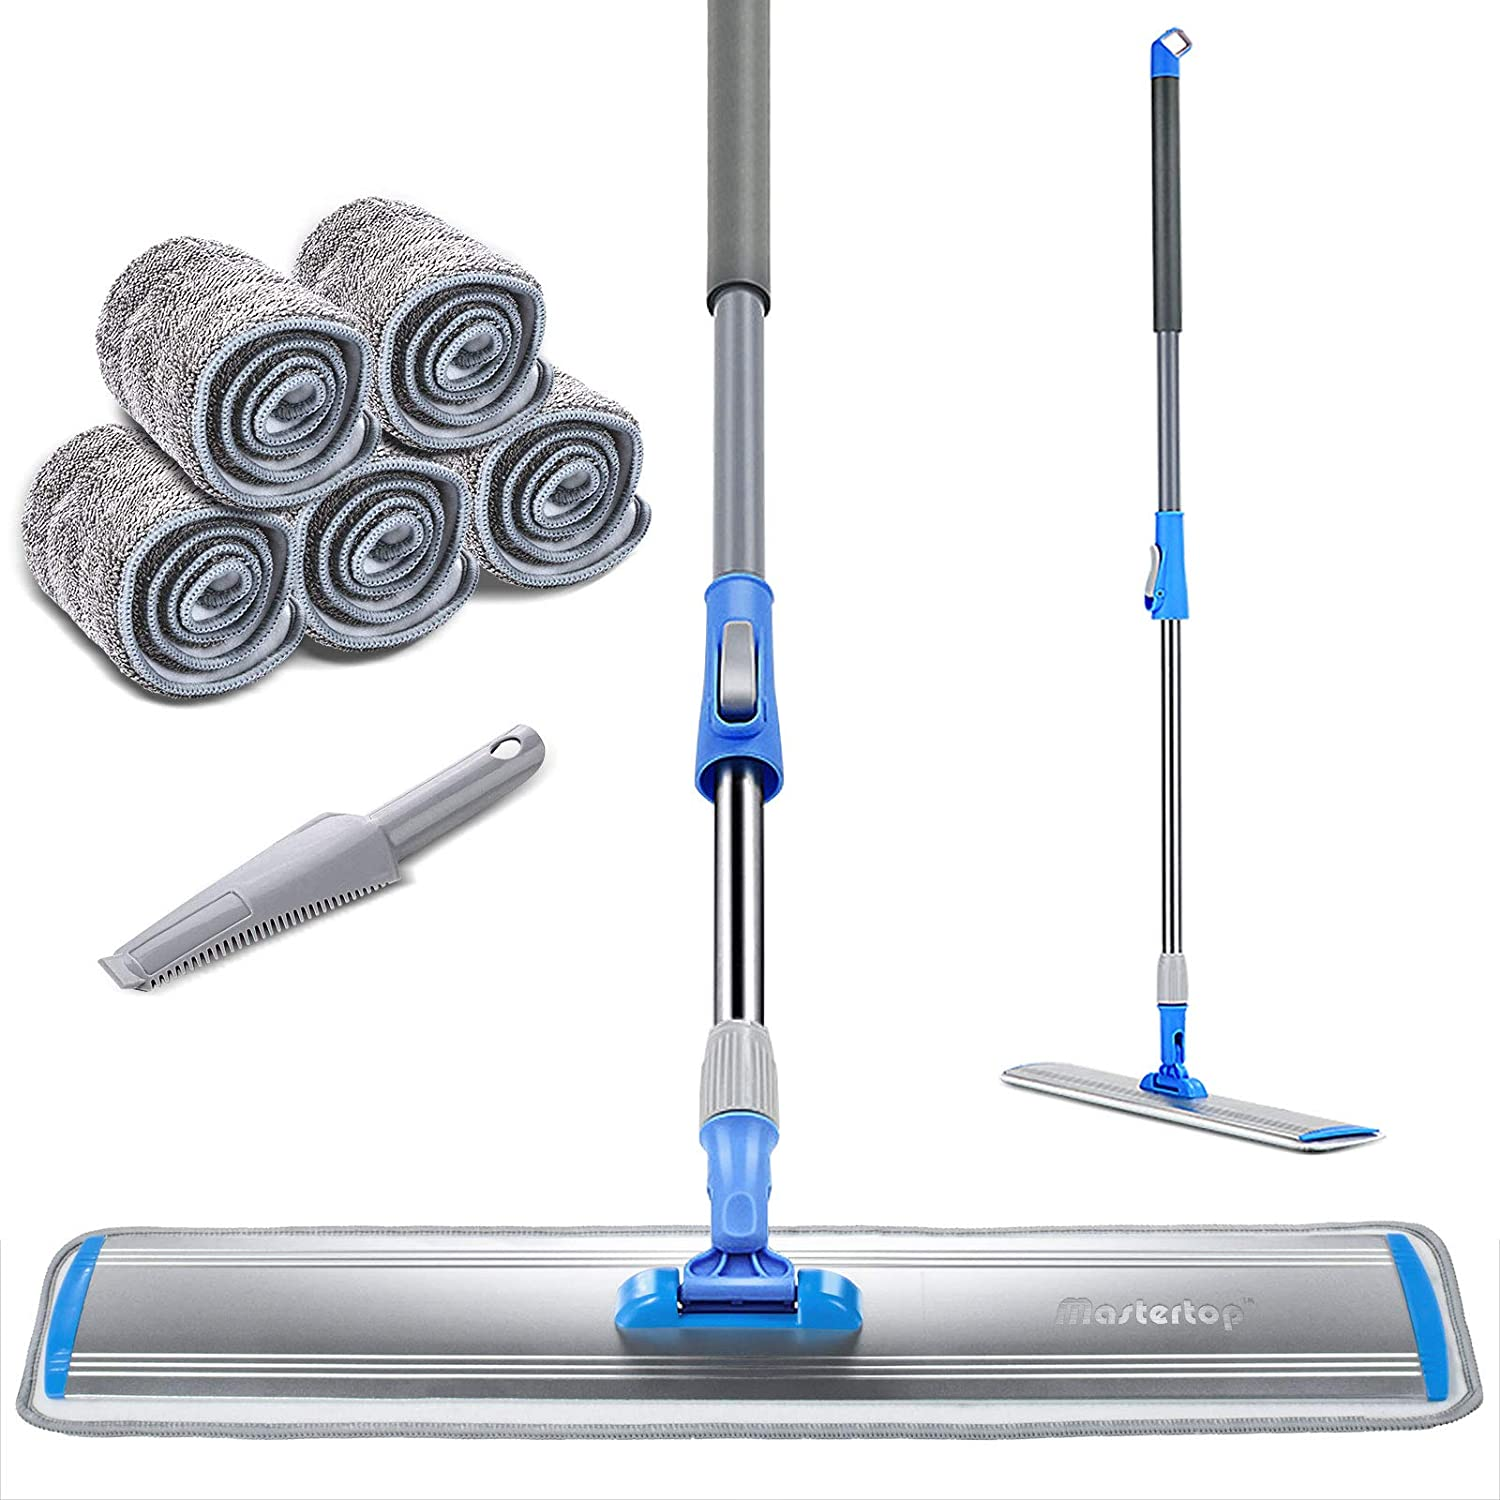 "Interchangeable with Other SWOPT Products for More Efficient Cleaning and Storage Mop Head and Refill Only Handle S Microfiber Mop Head for Use on Wood Lint Free Cleaning SWOPT 24/"" Microfiber Dust Mop Head Laminate and Tile Floors"